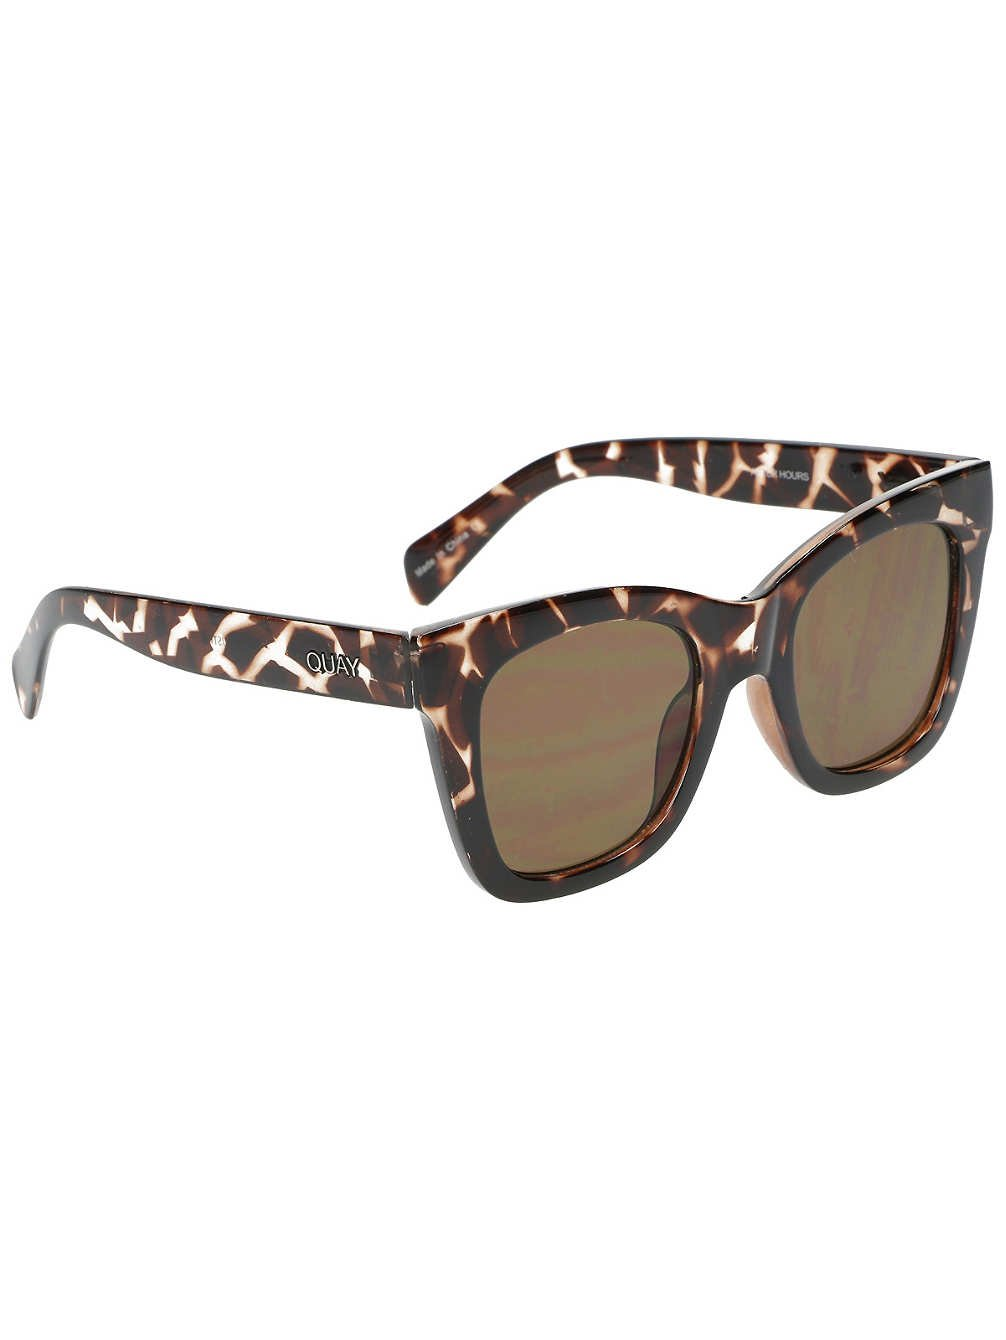 Quay Women's After Hours Sunglasses, Tortoise/Brown, One Size